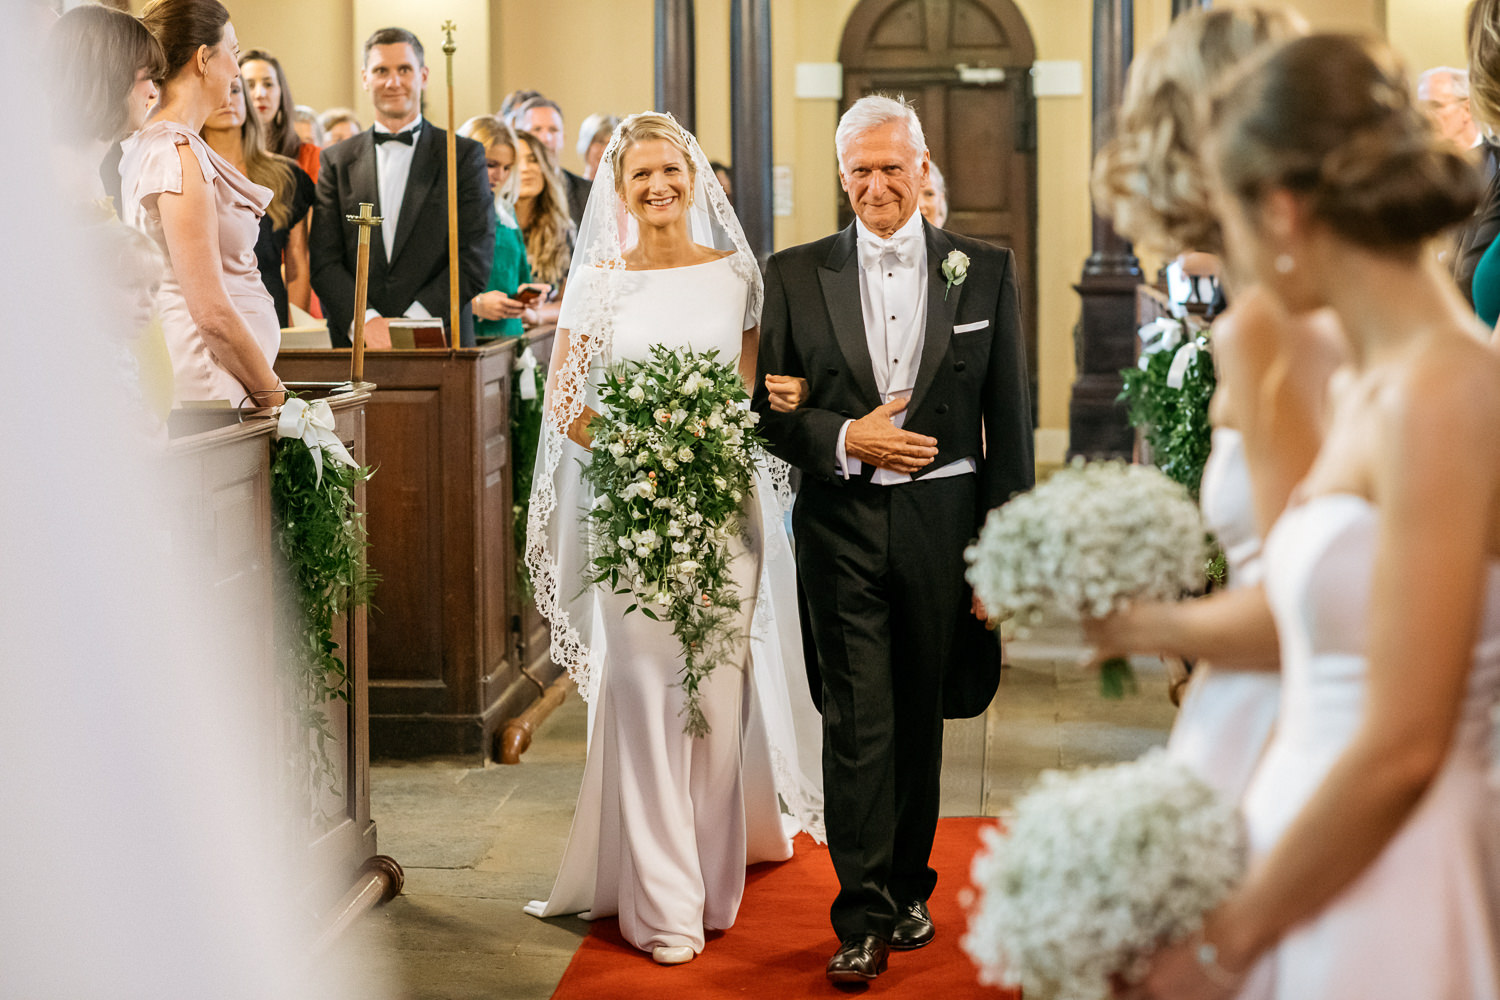 Ceremony at St Michael's Aynhoe